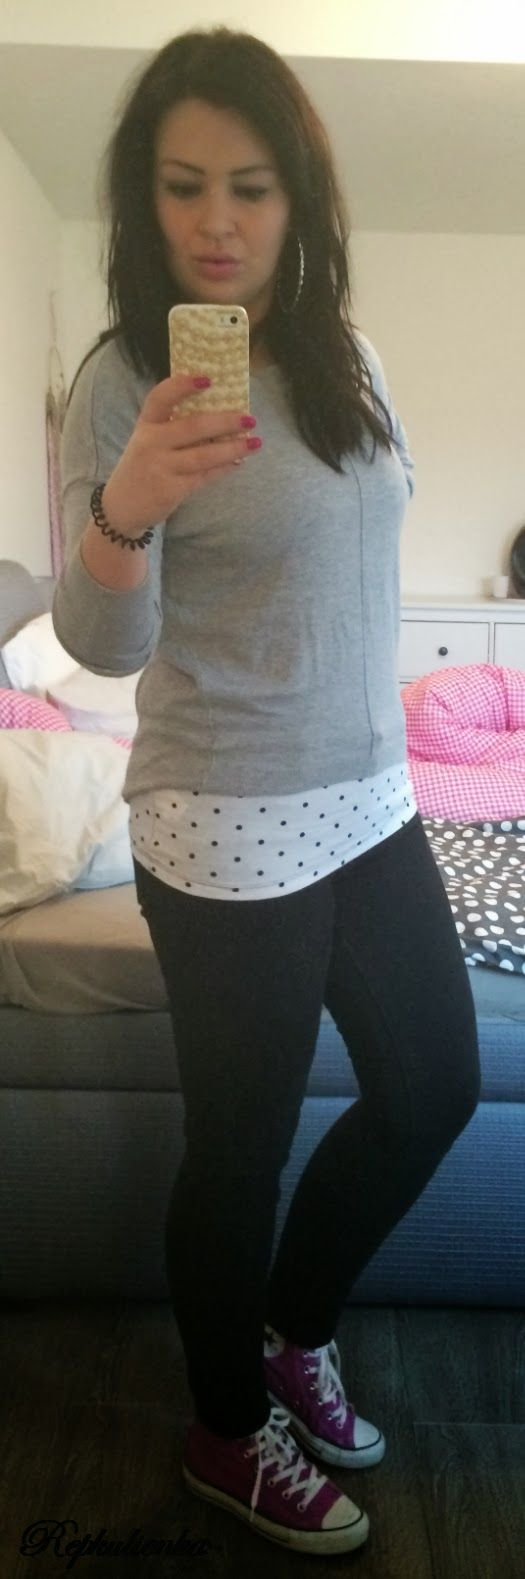 #11 basic t-shirt with dots Primark pullover Primark trousers Zara sneakers Converse watches Marc Ecko bracelet unknown brand earrings Primark